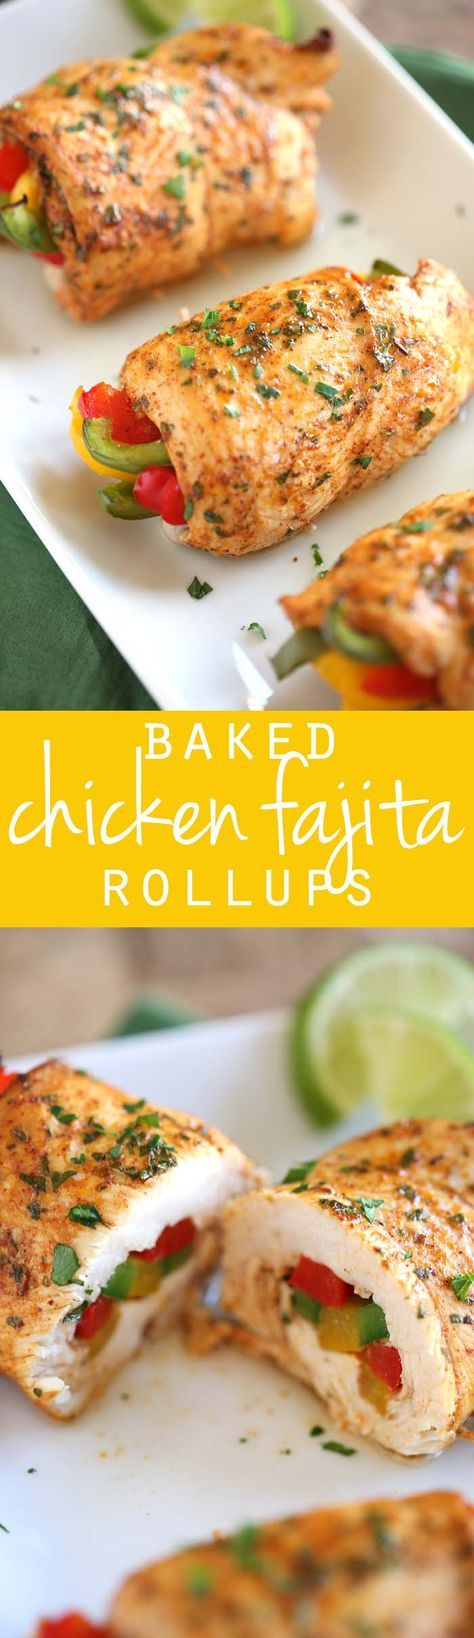 Baked Chicken Fajita Roll-Ups are easy to make, super moist and make the perfect delicious low-carb meal!  eat-yourself-skinny.com